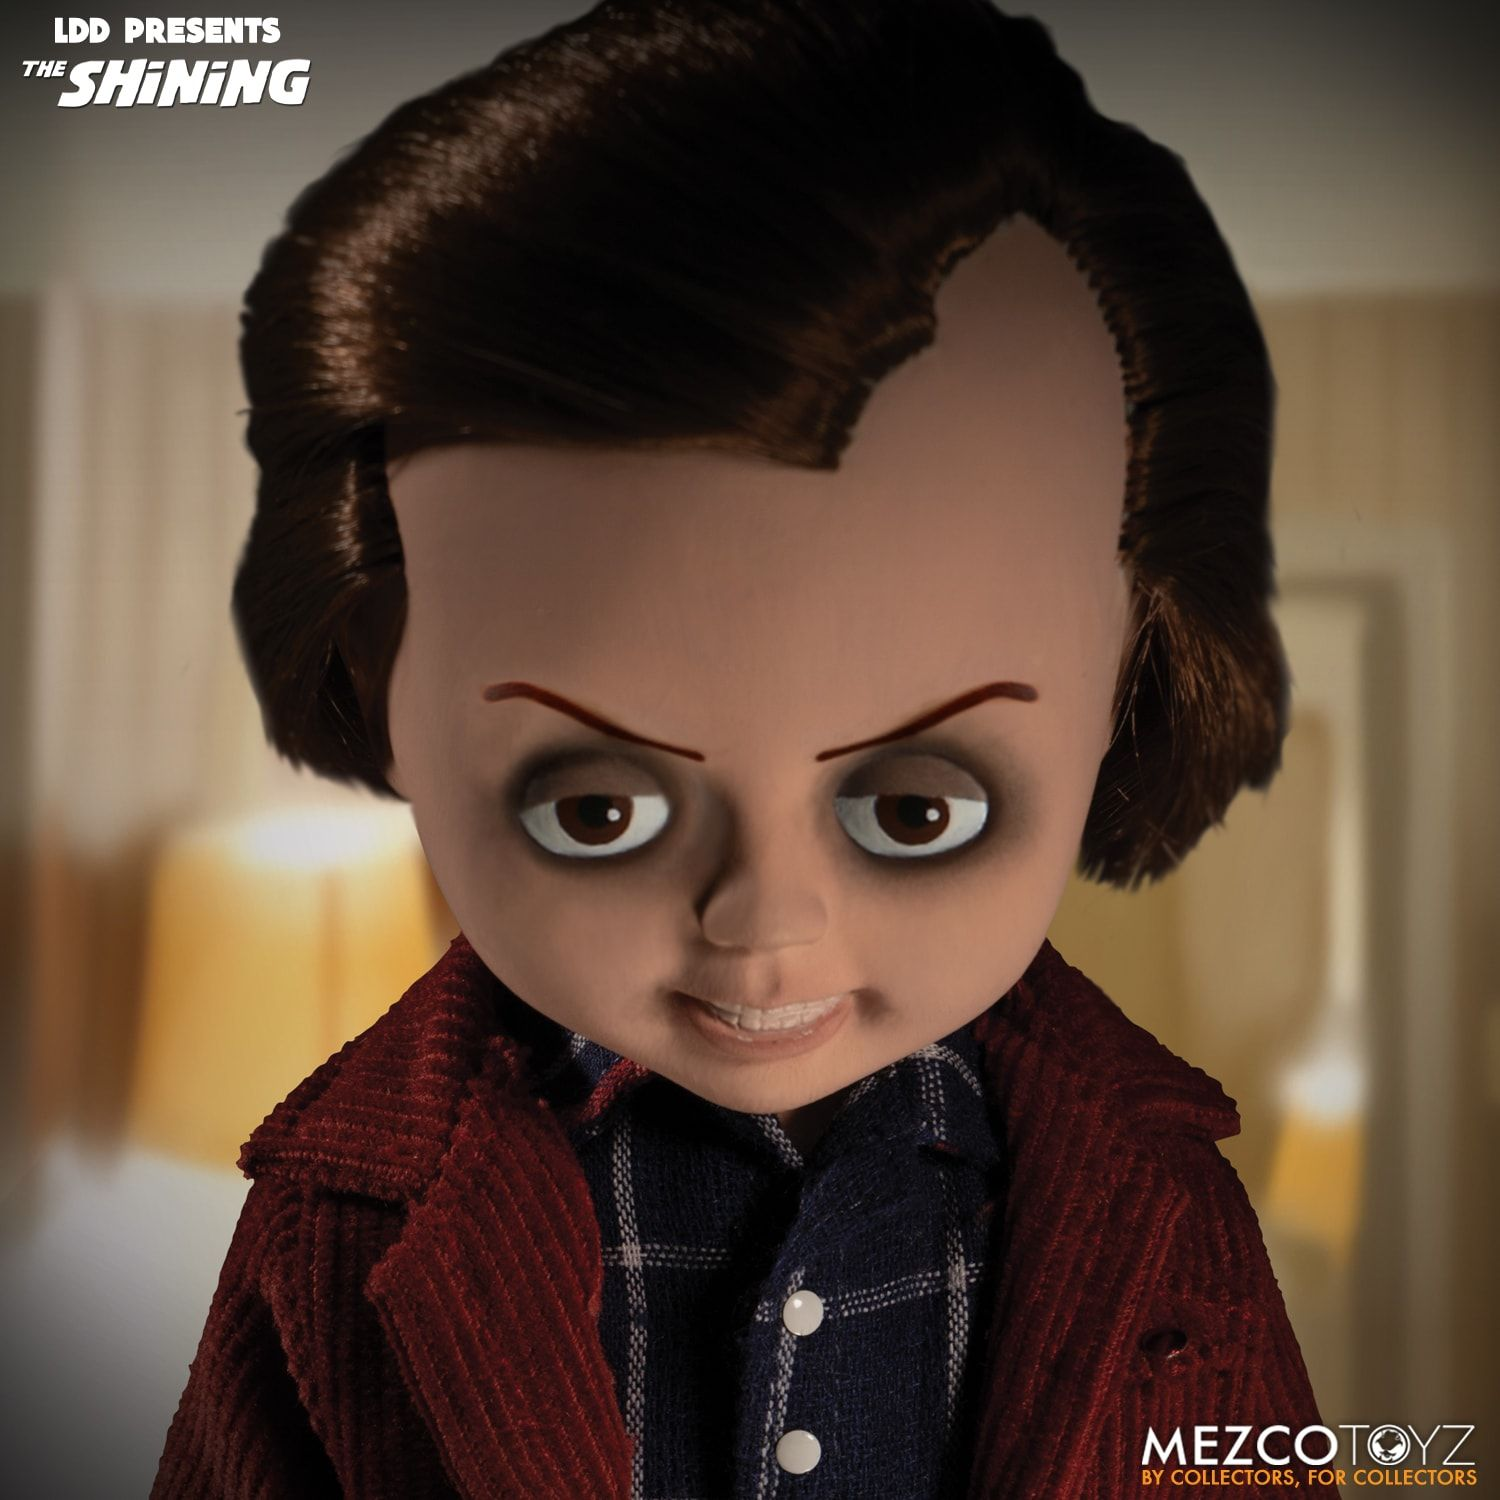 Mezco Jack Torrance The Shining Living Dead Dolls - Collectors Row Inc.